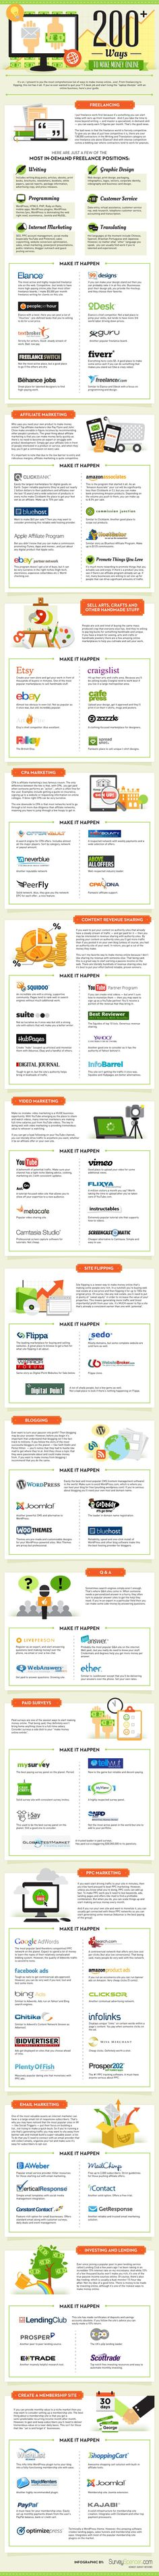 Make Money Online: 150+ Brilliant Ways #Infographic #MakeMoneyOnline #Money #EarnMoney